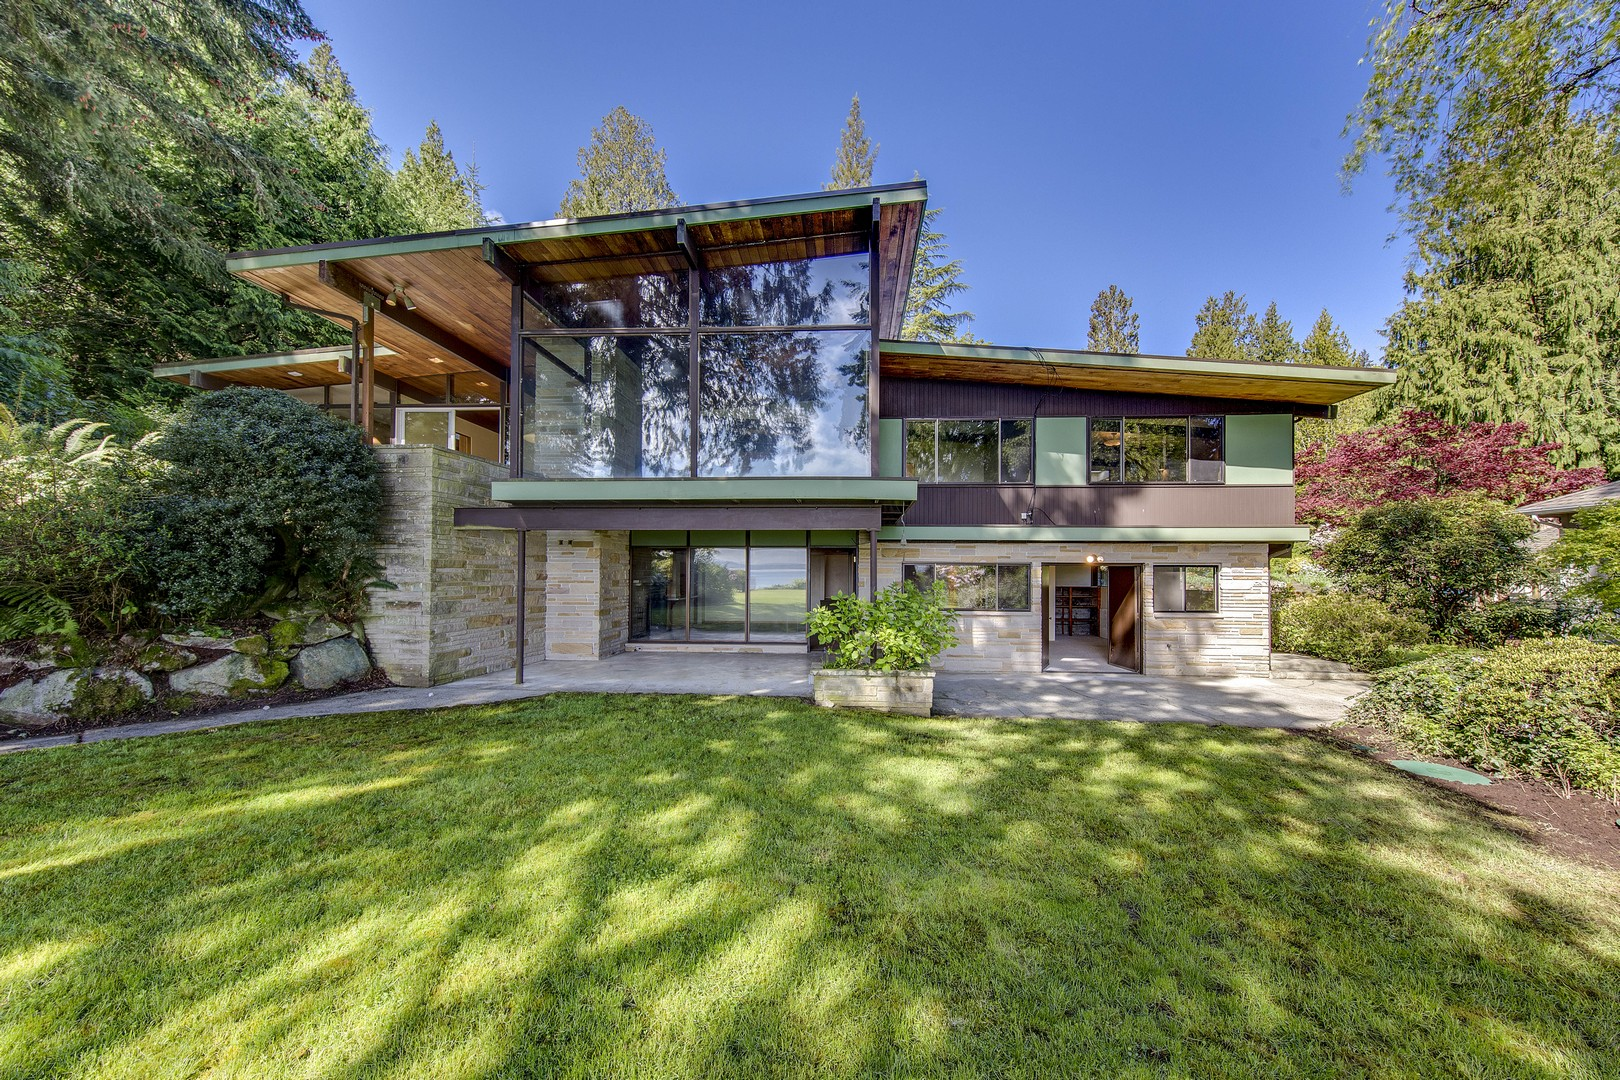 Single Family Home for Sale at Stunning NW Contemporary 16780 Agate Point Rd NE Bainbridge Island, Washington 98110 United States